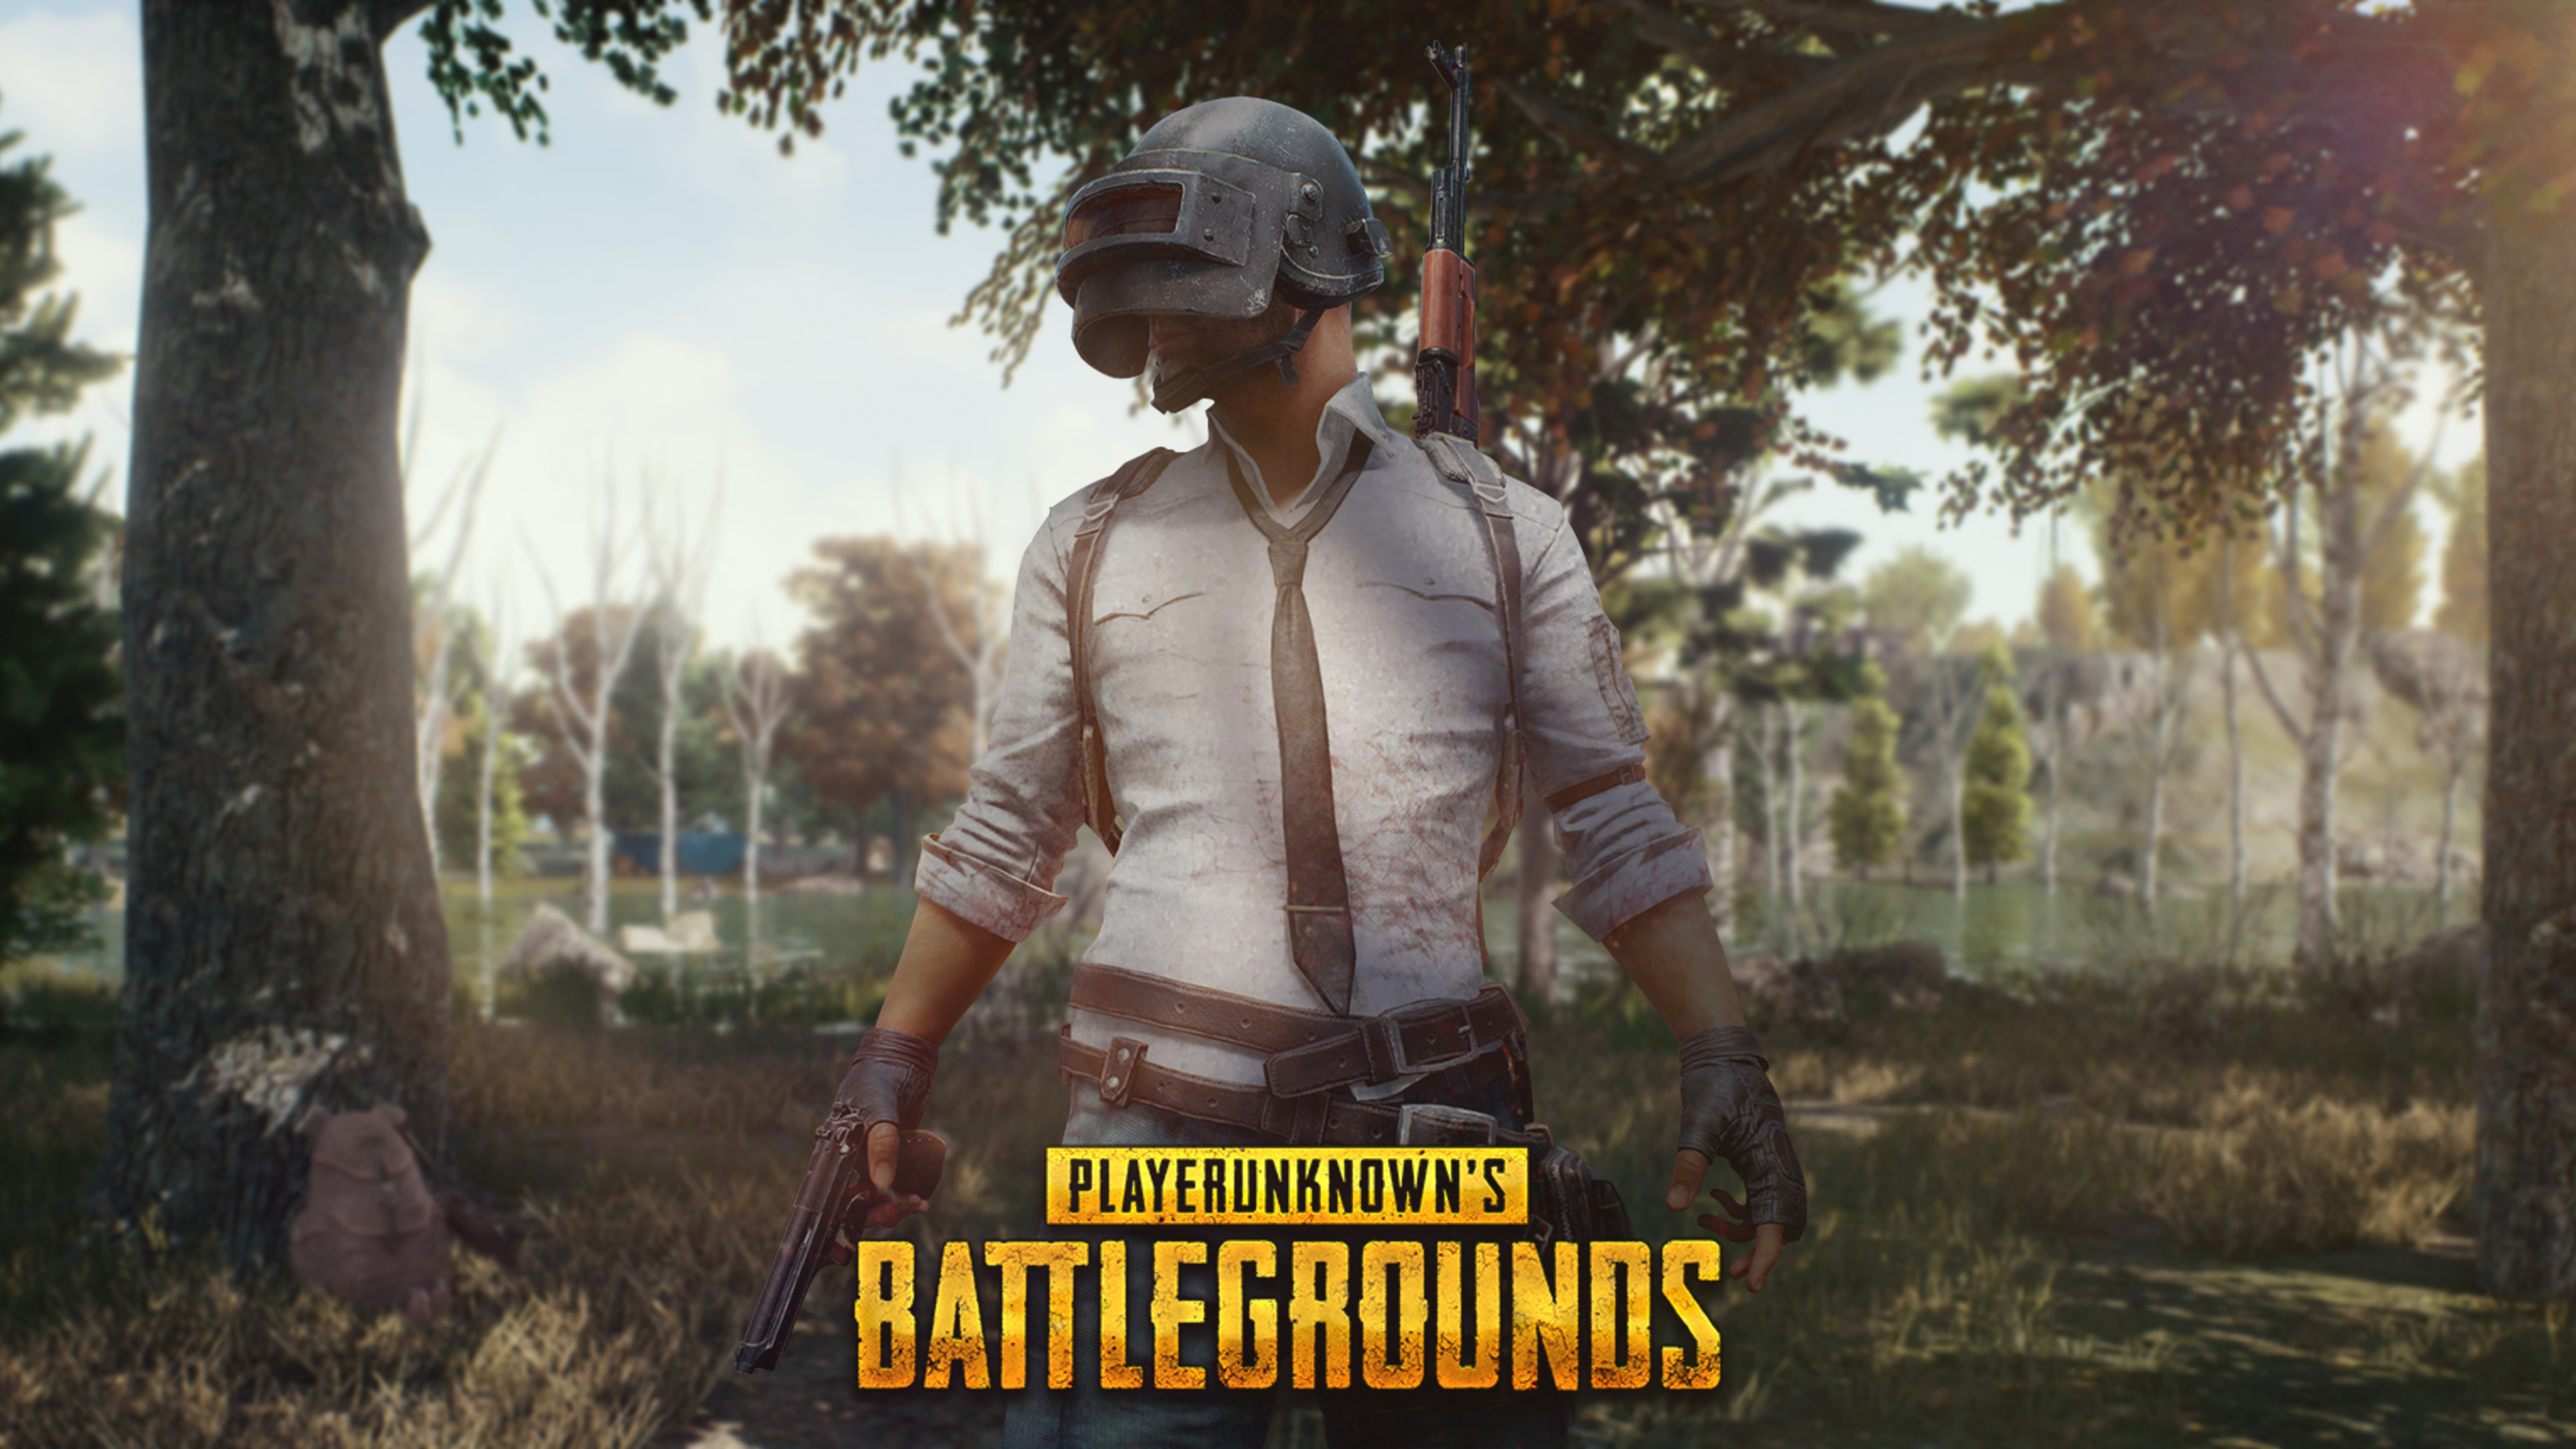 Pubg Helmet Guy 4k Pubg Wallpapers Playerunknowns: Pubg Mobile Helmet Guy 4k Pubg Wallpapers, Playerunknowns